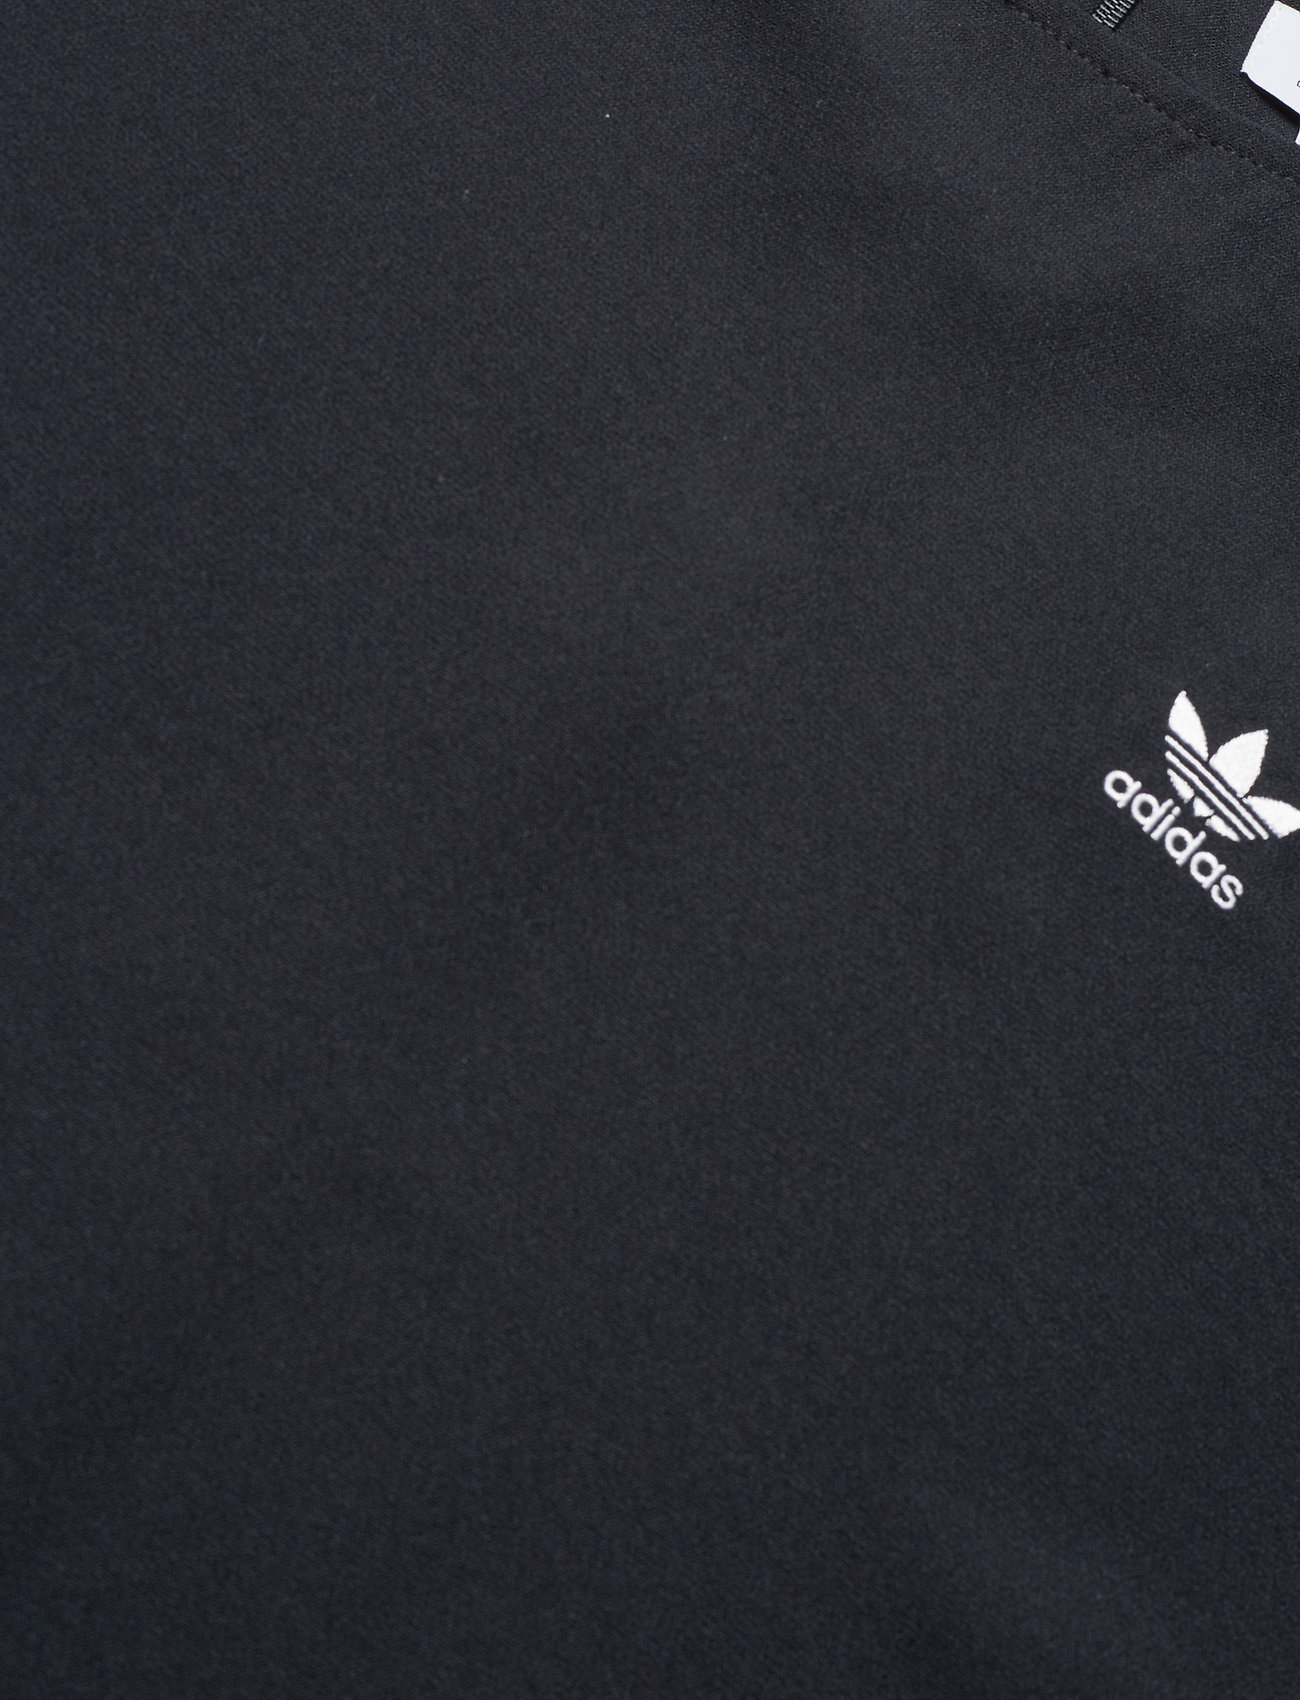 adidas Originals 3 STRIPES TEE - T-shirty i zopy BLACK - Kobiety Odzież.